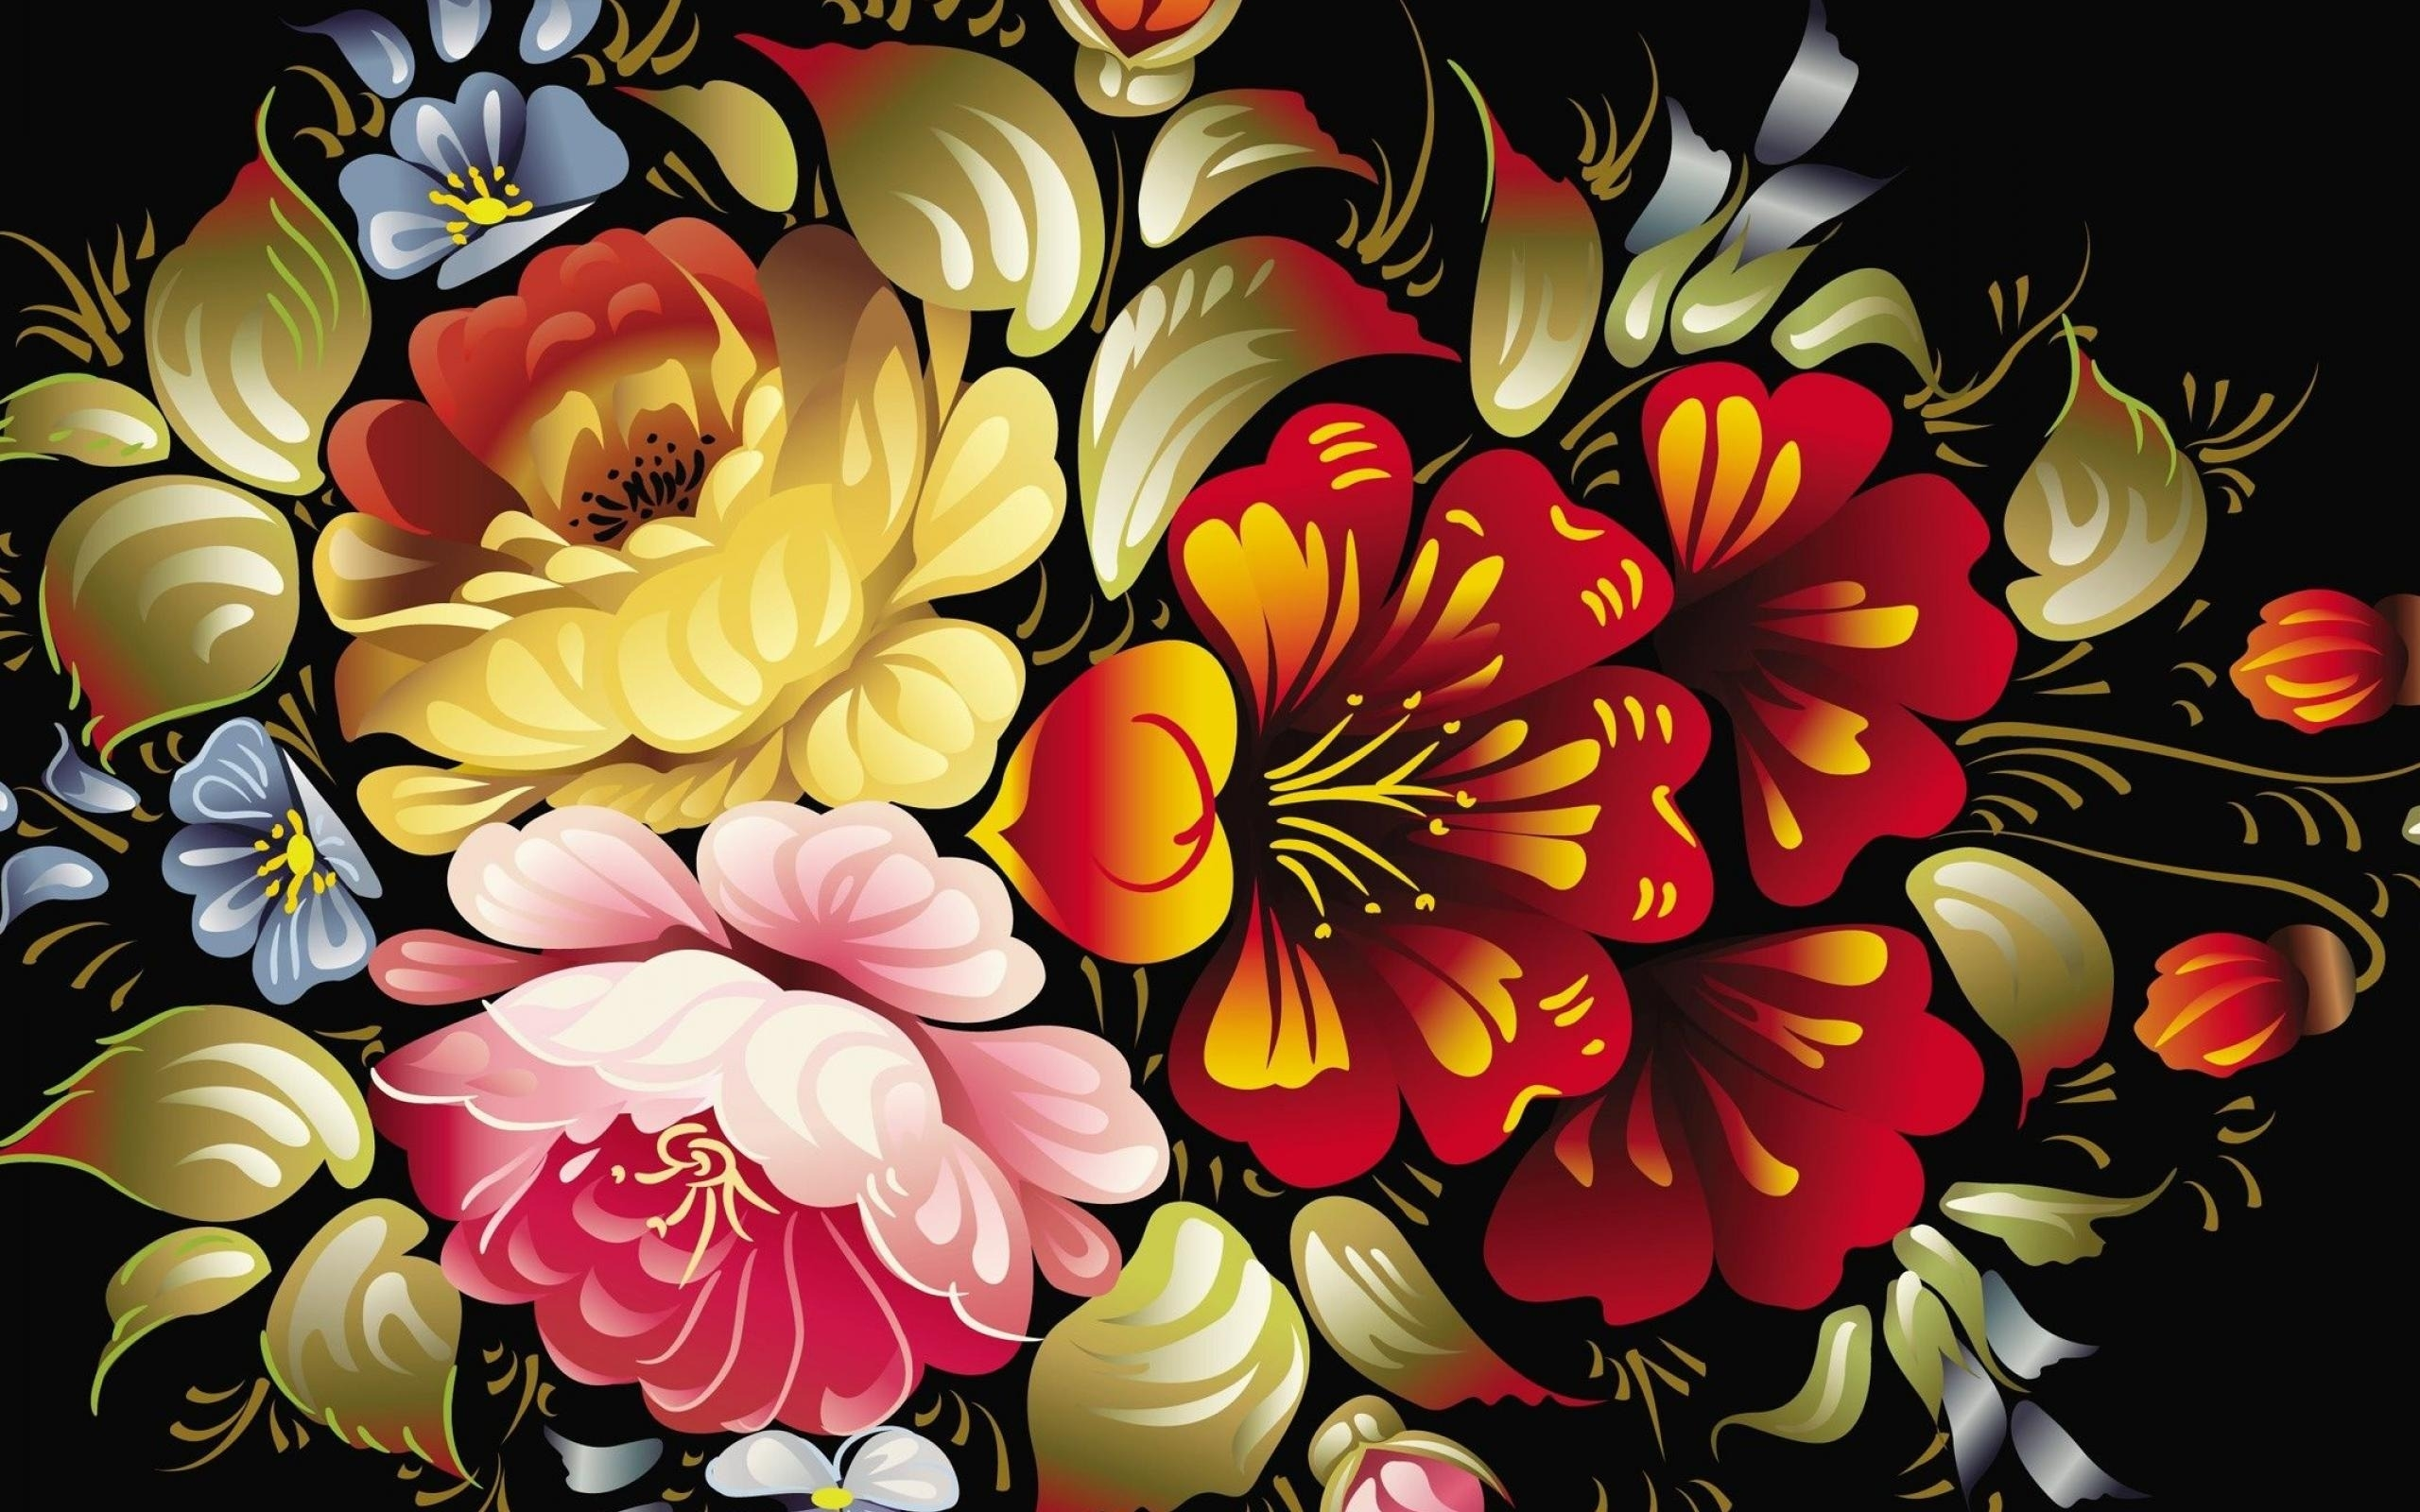 abstract-flower-wallpapers-hd.jpg